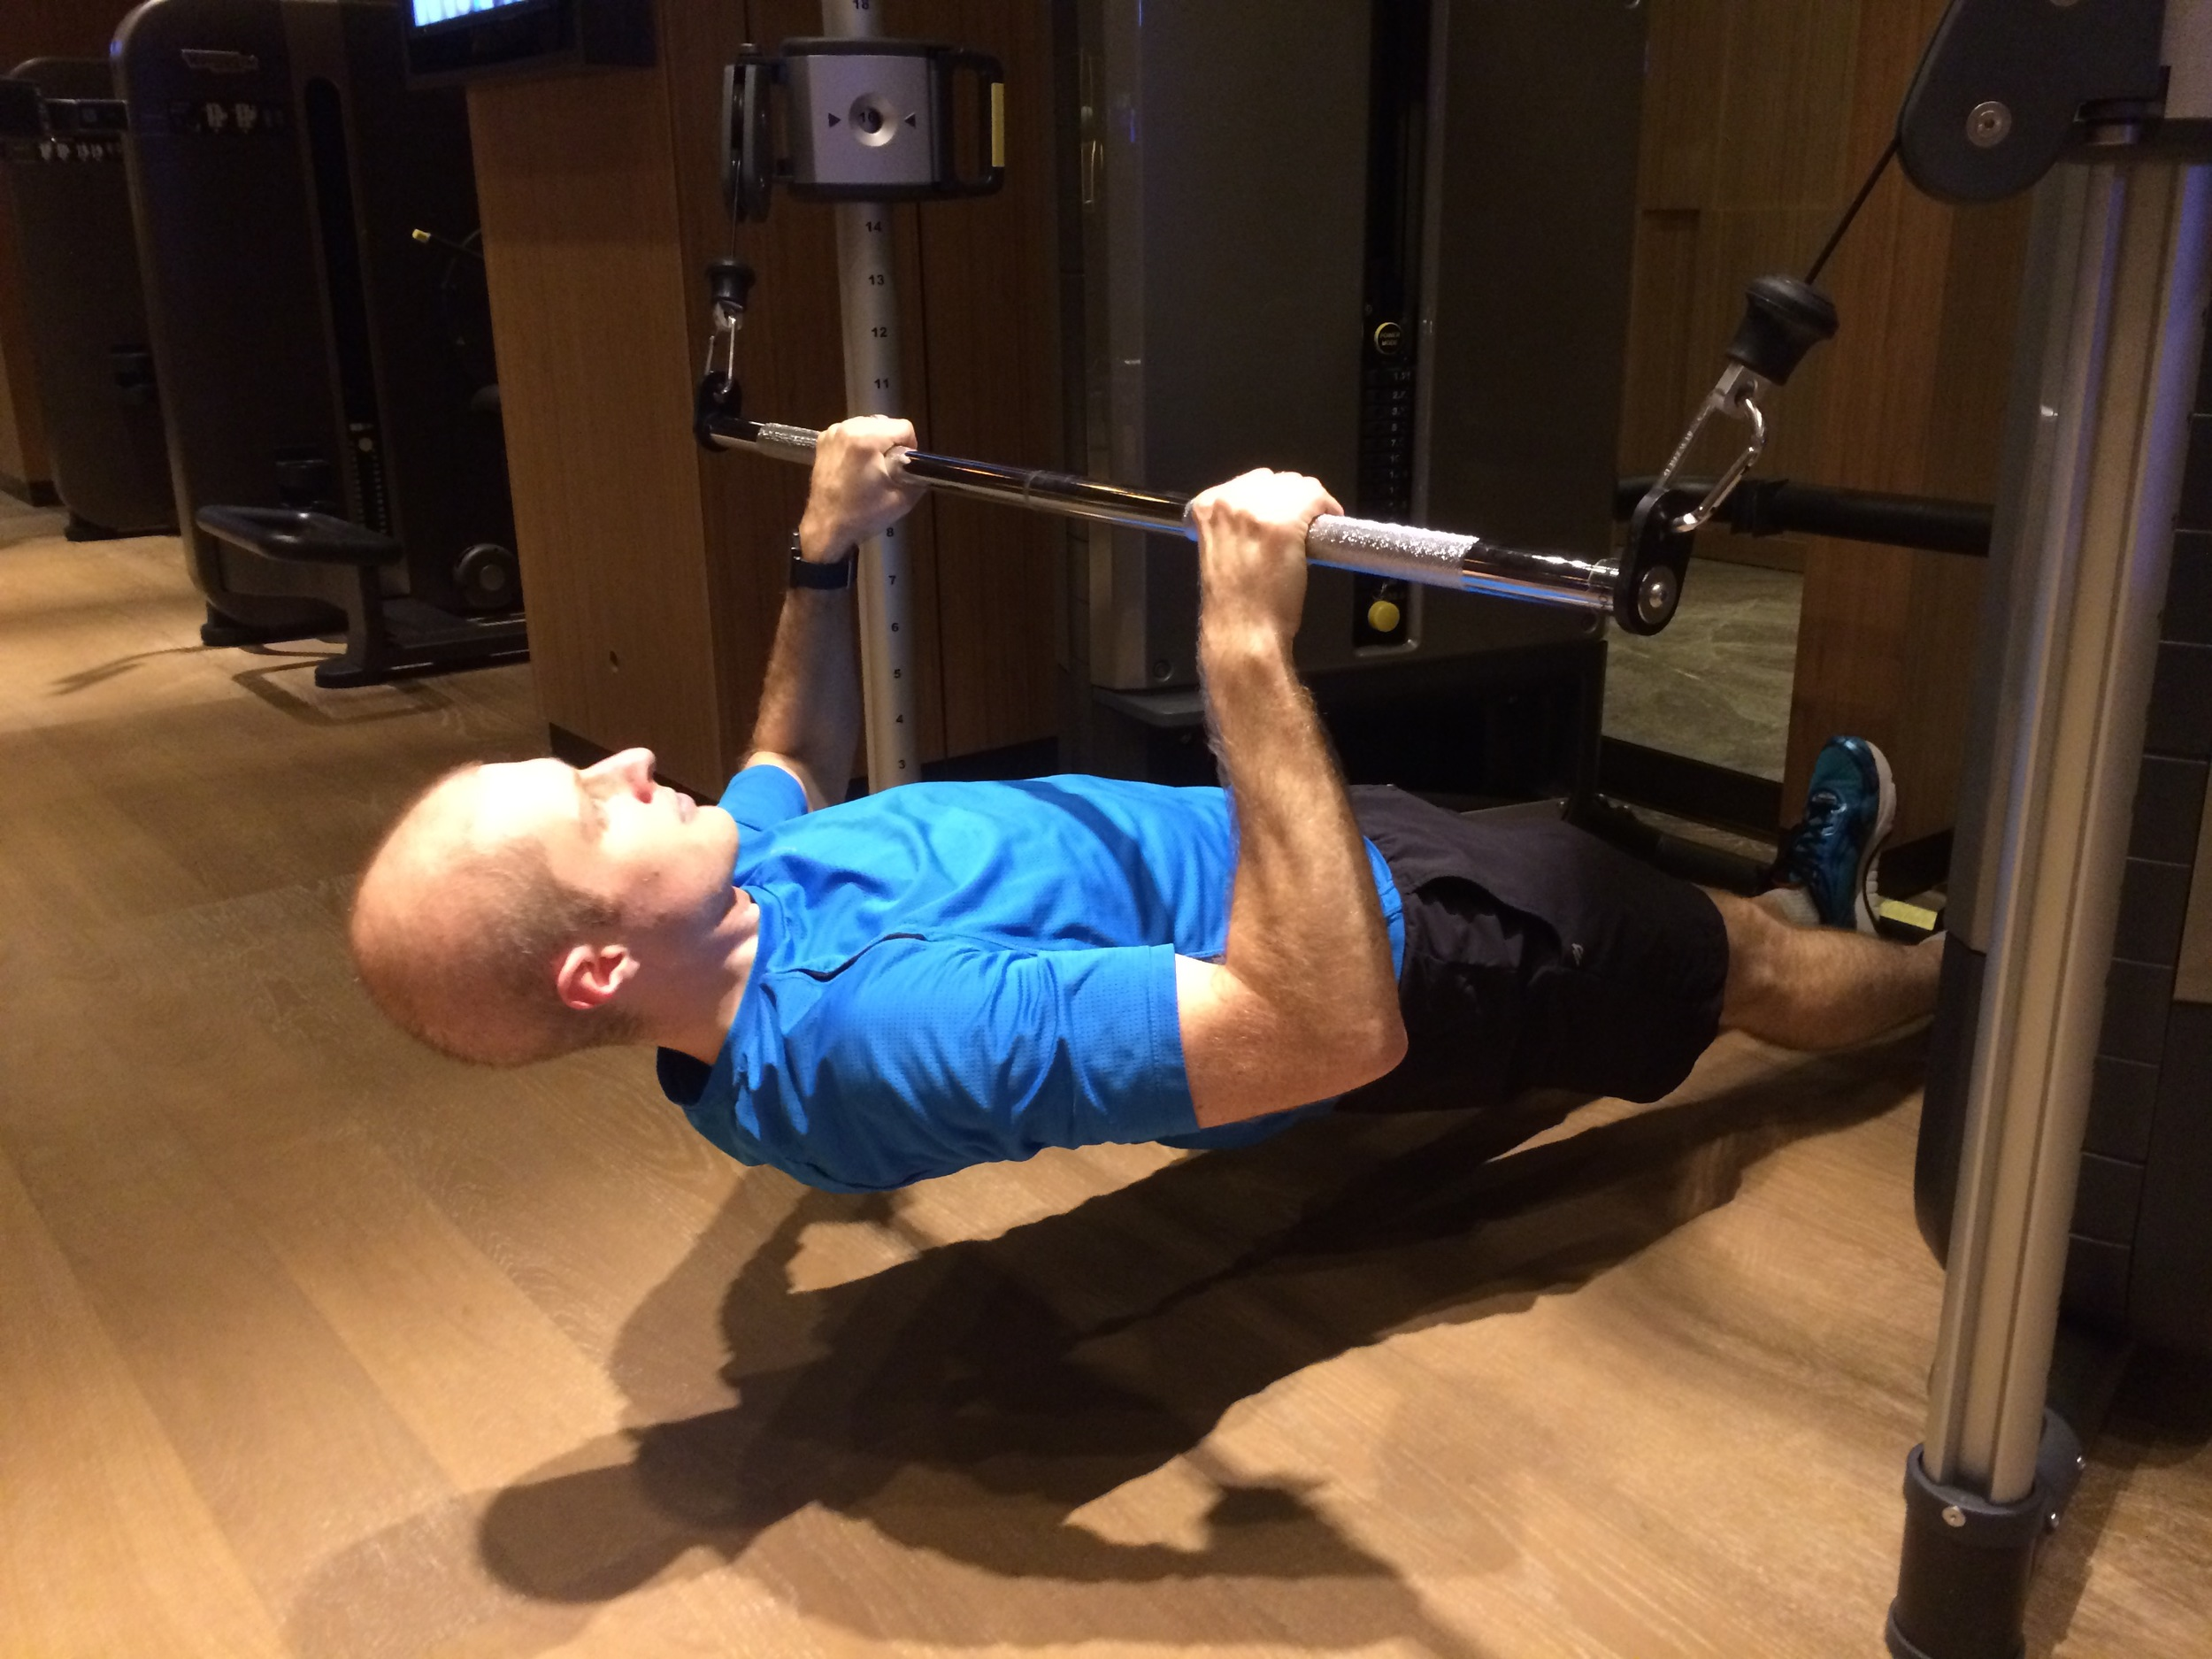 Thom Rieck - Upper_Body_Pull_Body_Row.JPG